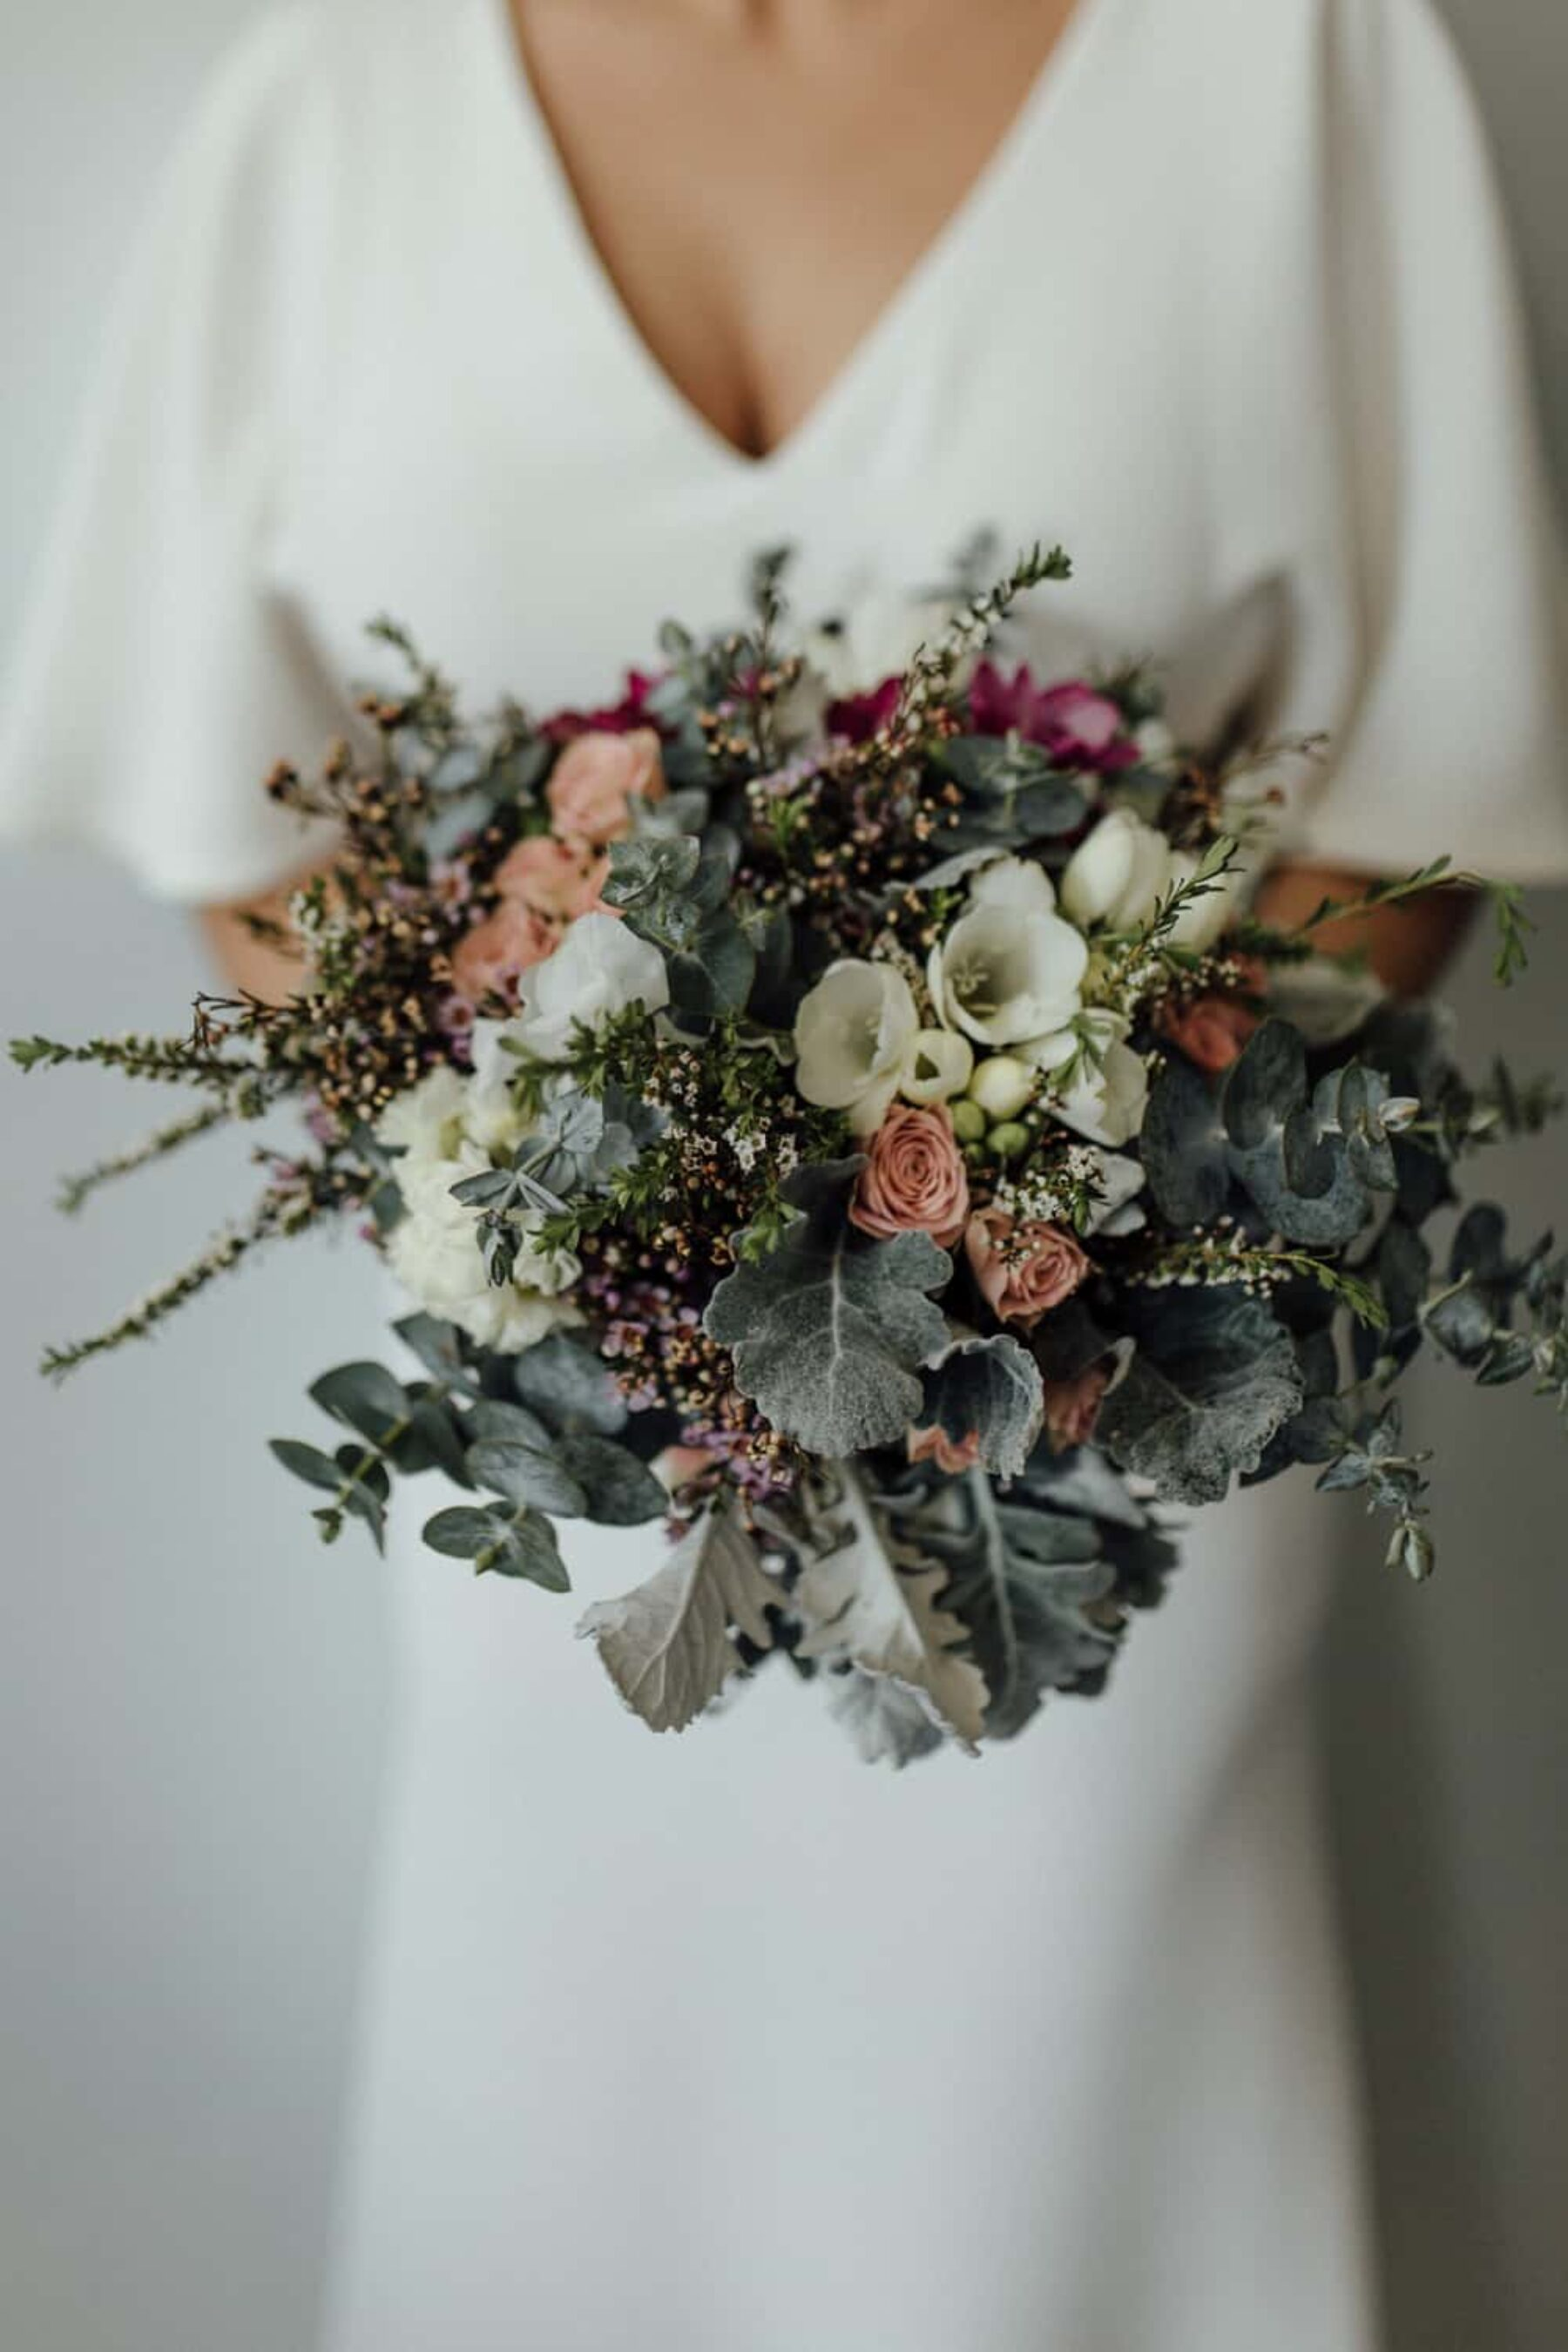 modern bride with rose and wax flower bouquet in muted tones